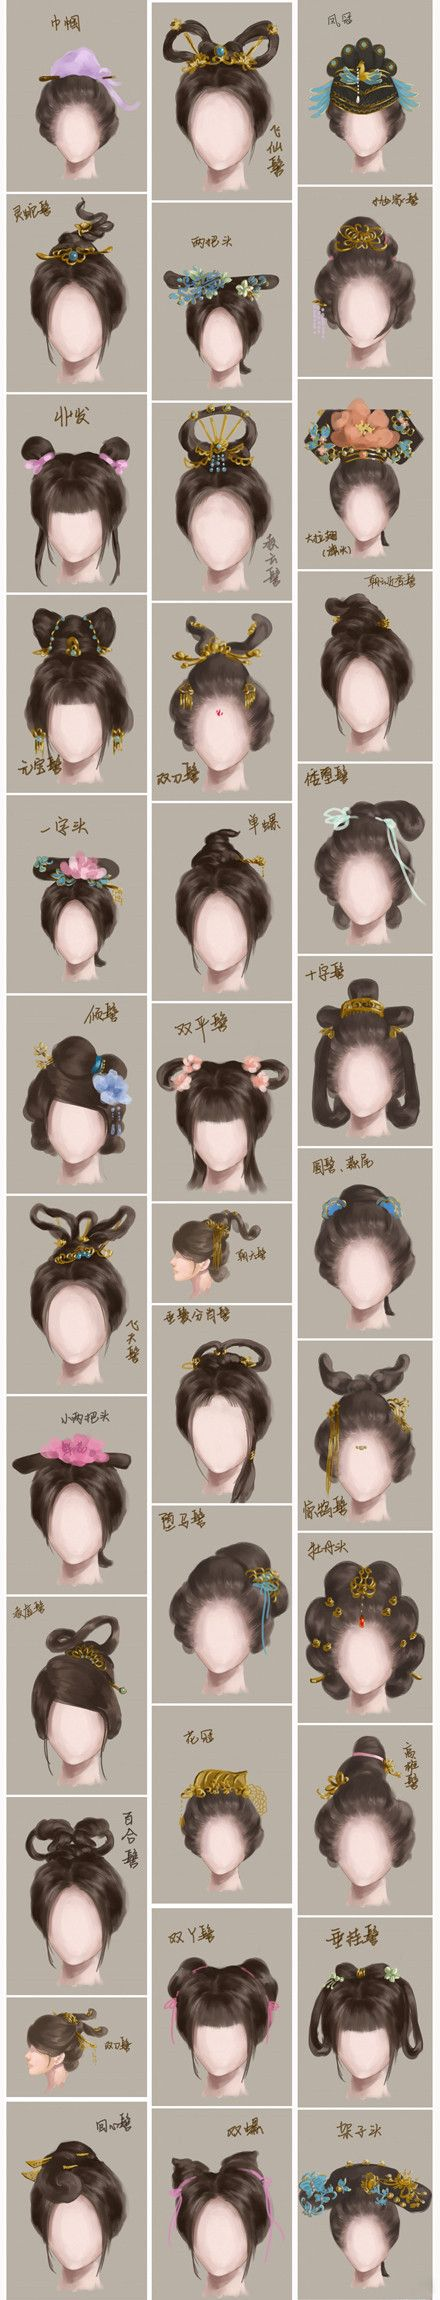 These look like Chinese historical hairstyles, but I could be wrong.